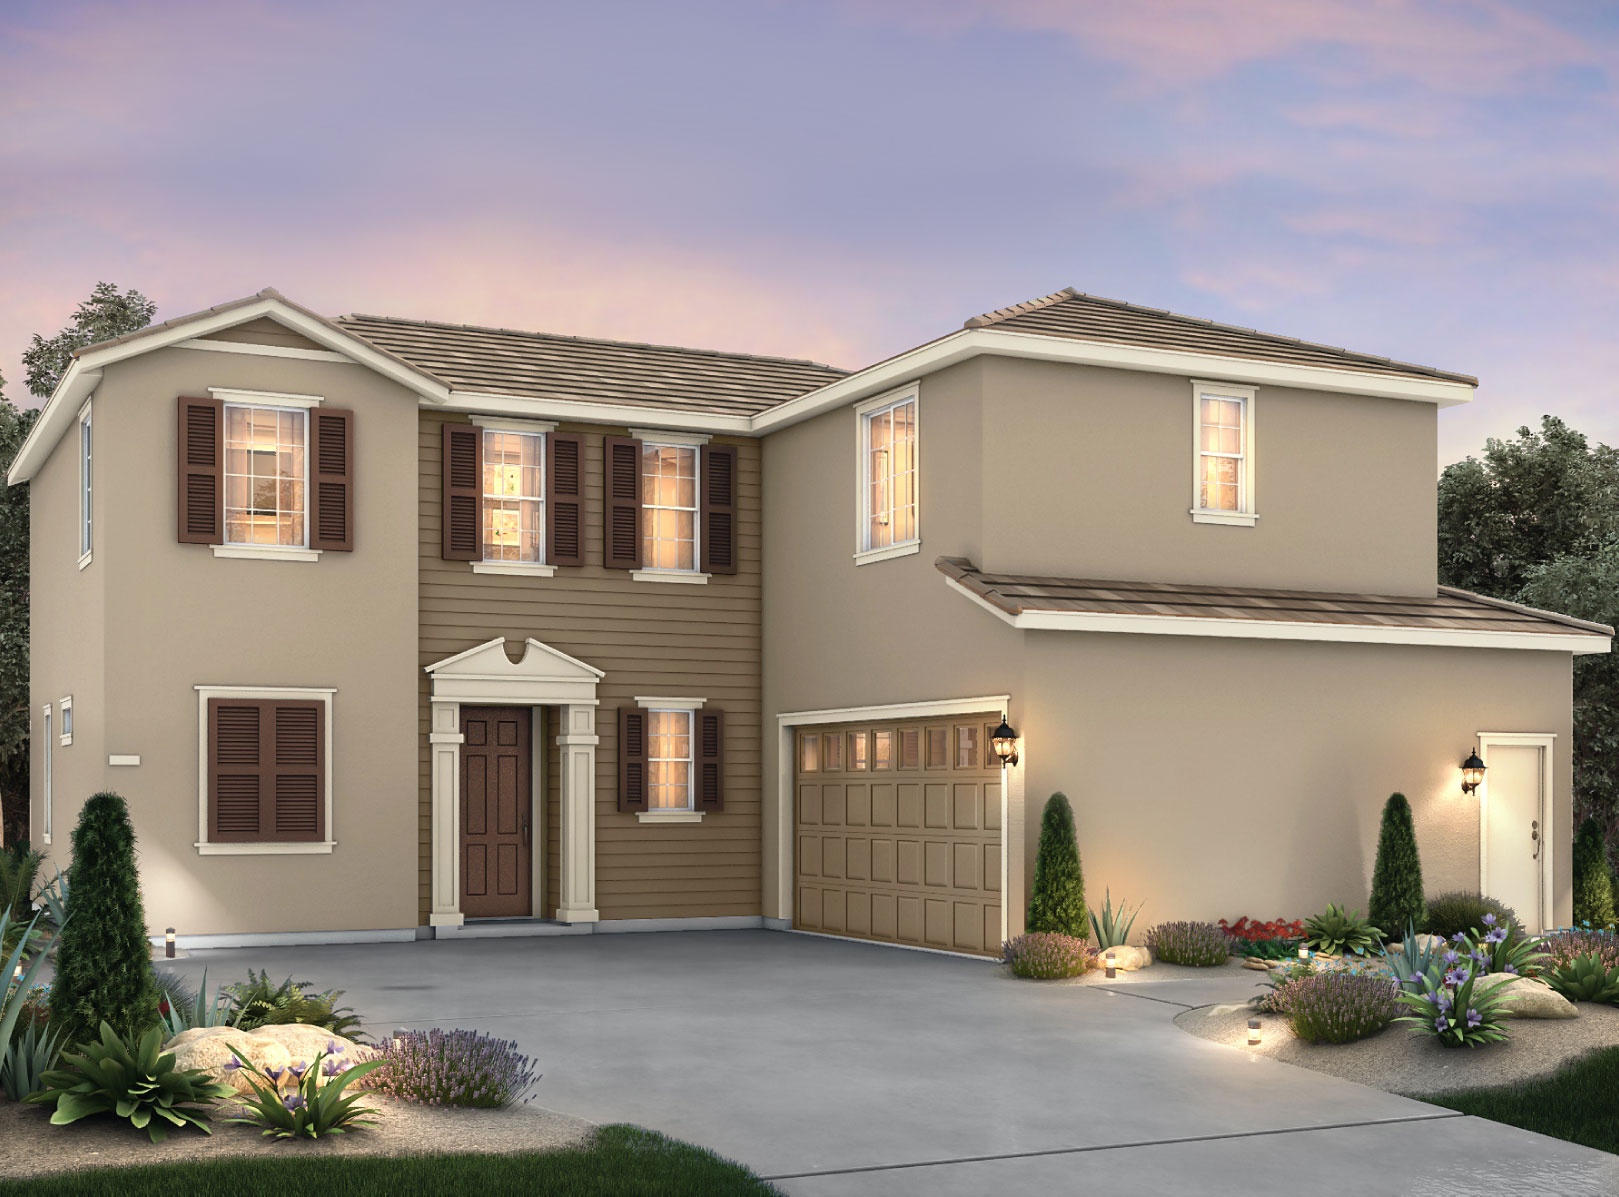 rohnert park jewish singles Search 32 apartments for rent with 3 bedroom in rohnert park, california find rohnert park apartments, condos, townhomes, single.